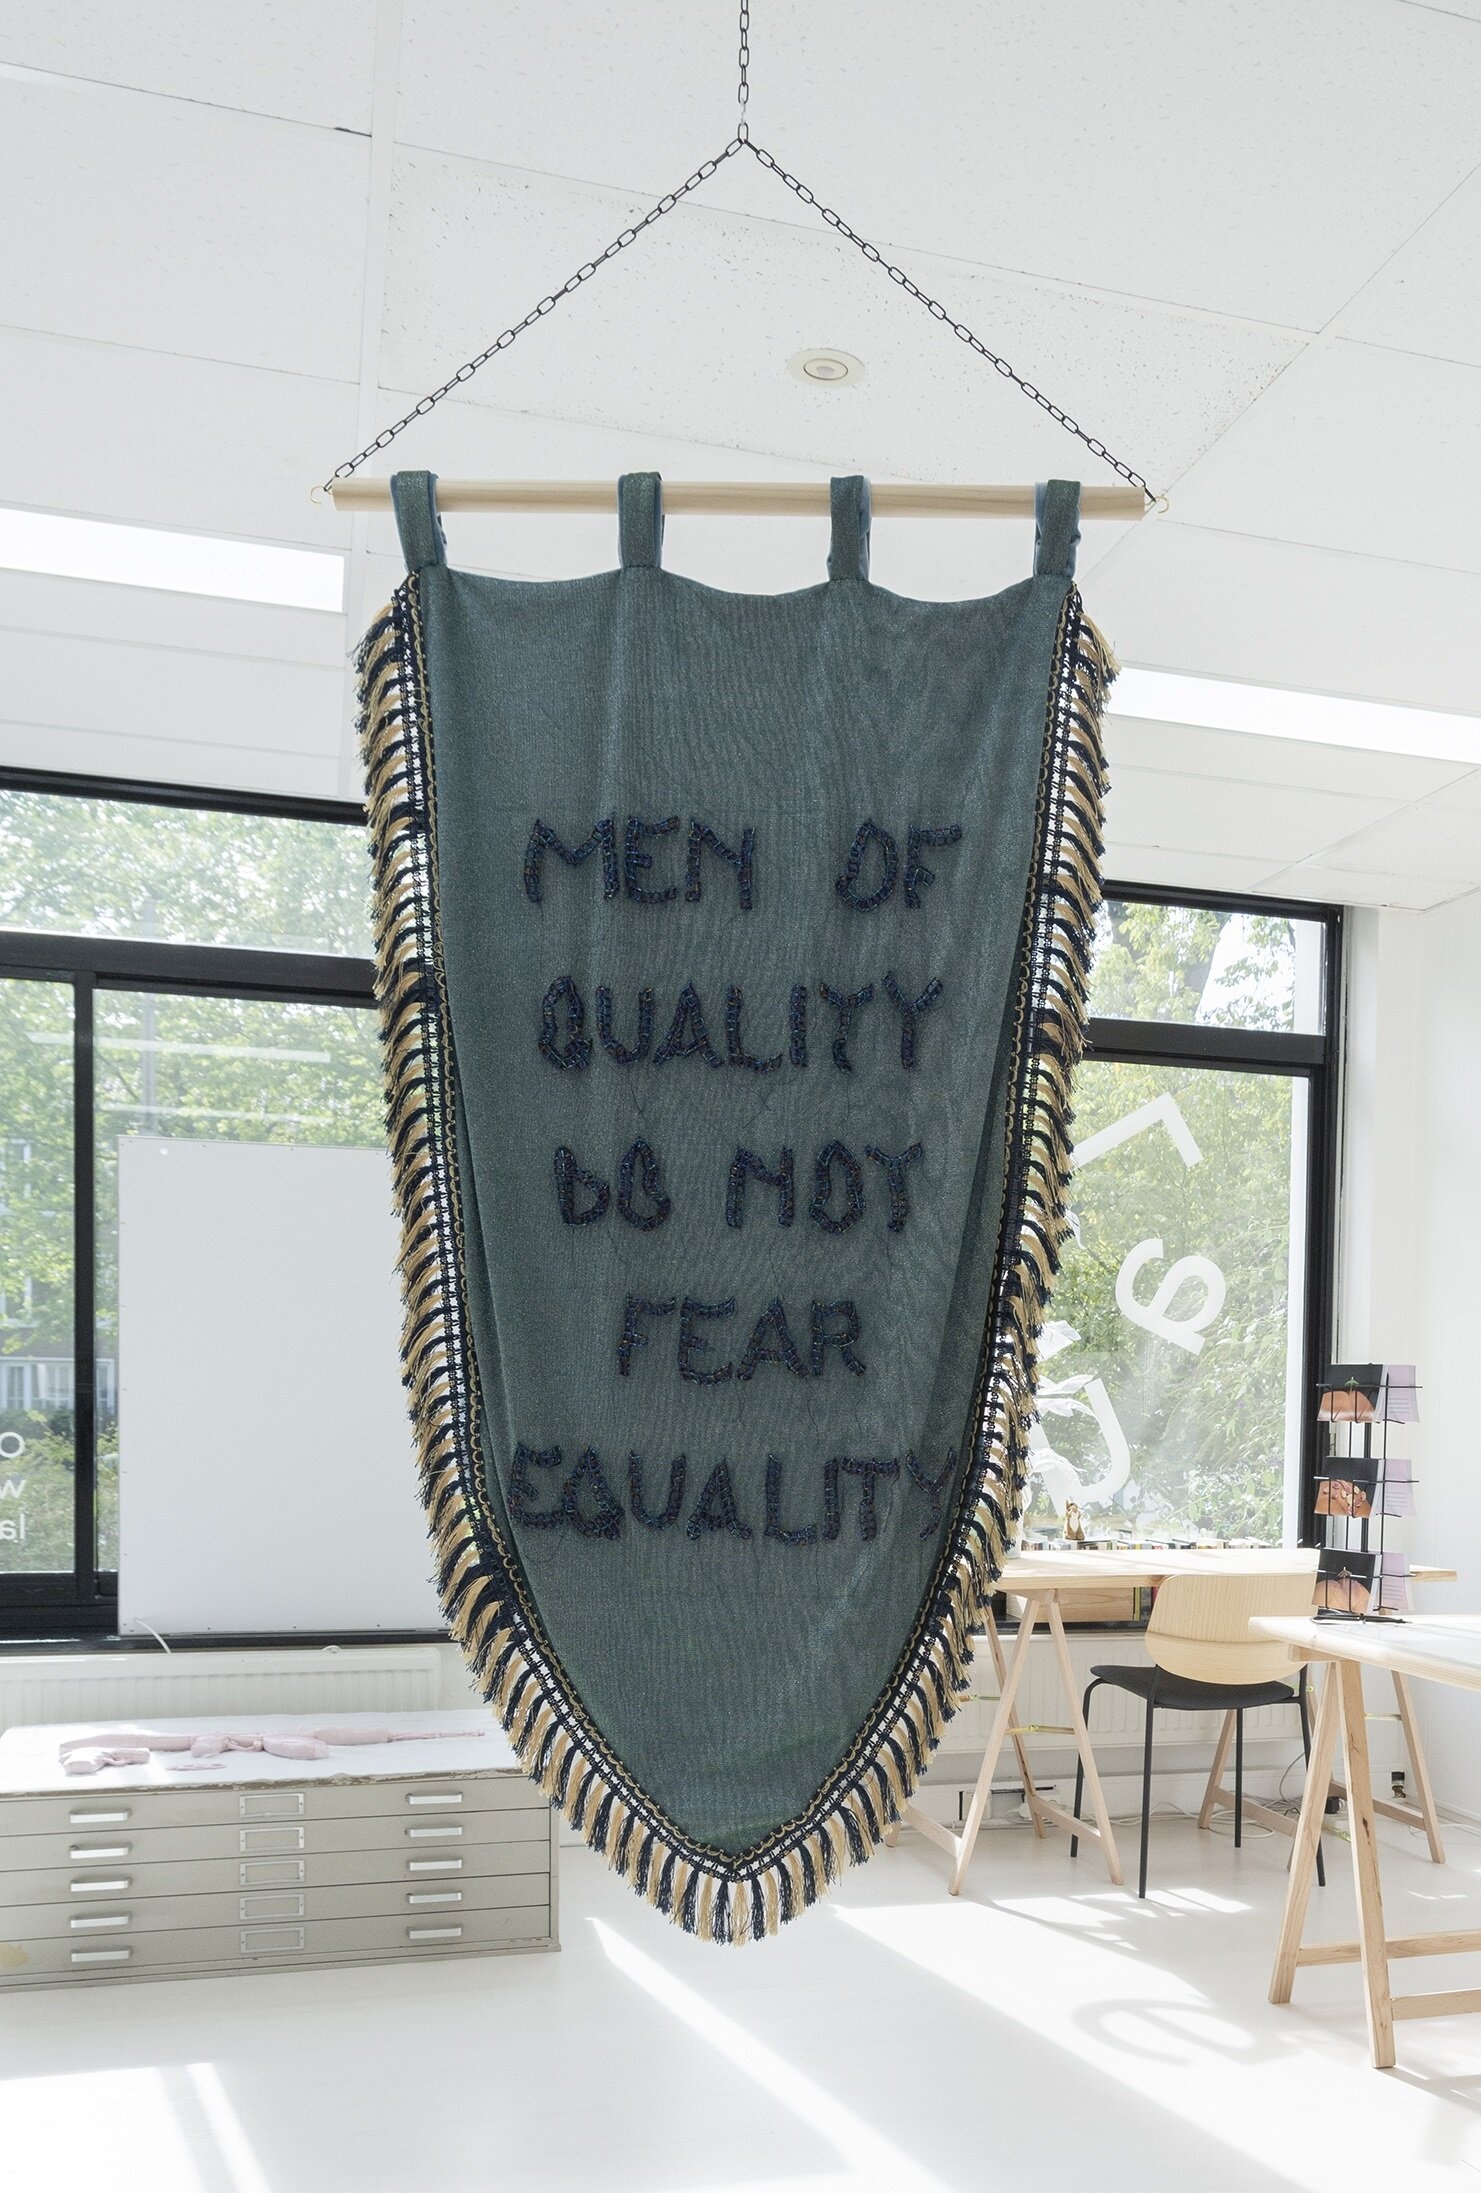 Men of Quality - Joyce Overheul, Men of Quality, 2019glass beads, metallic polyester, velvet, wood, handmade during Aria Residency Tehran, ca. 138 x 80 x 2cm, unique€ 3.350,- incl. VAT, certificate of authenticity